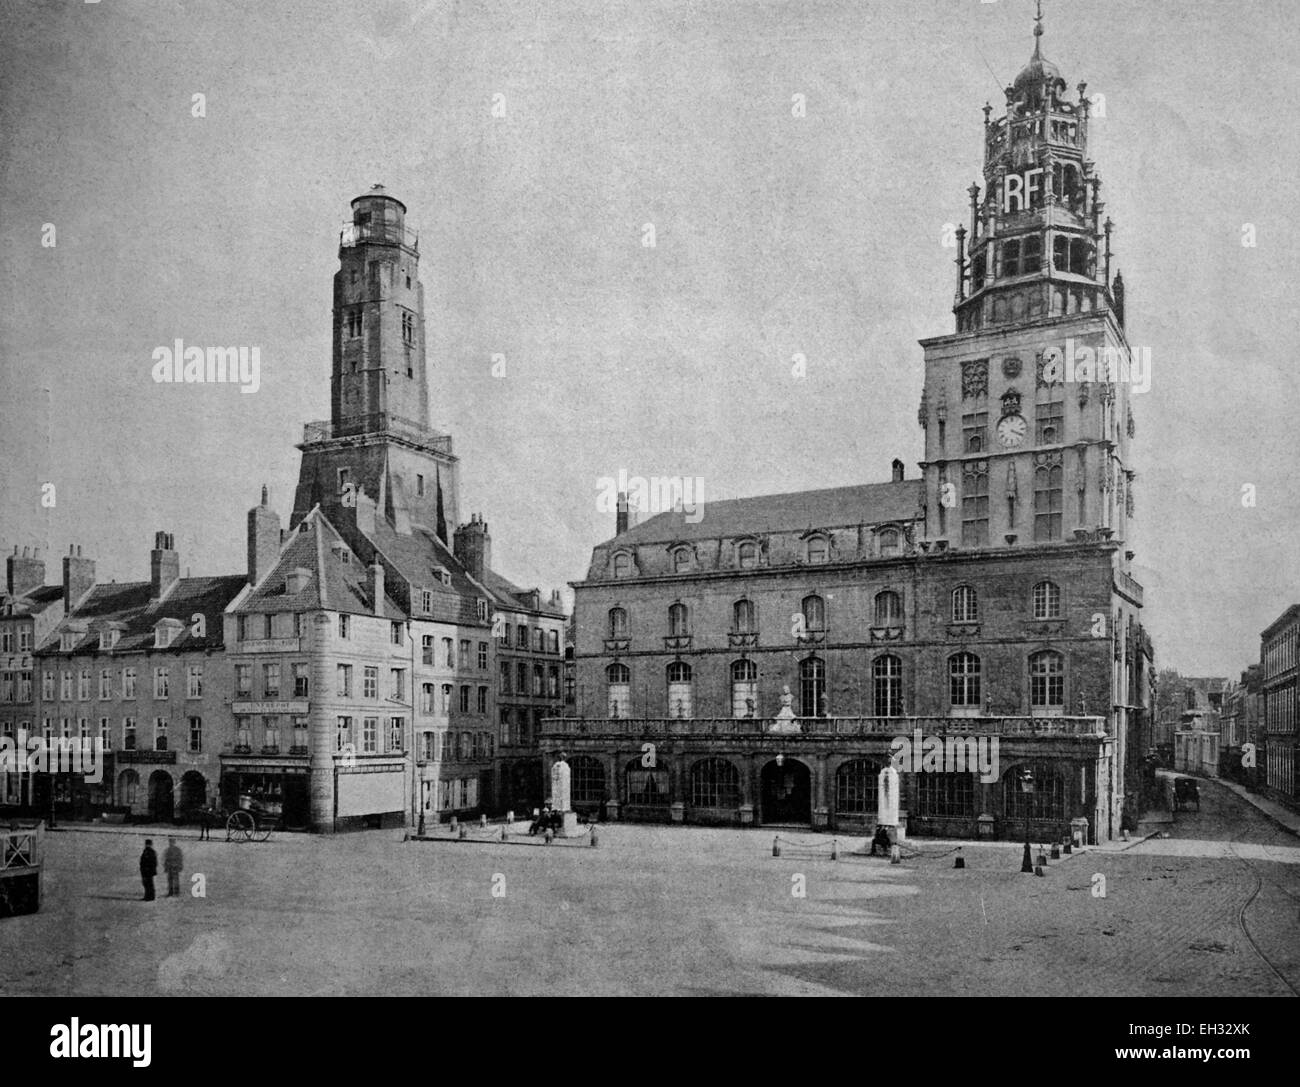 One of the first autotypes of the Town Hall of Calais, France, historical photograph, 1884 - Stock Image